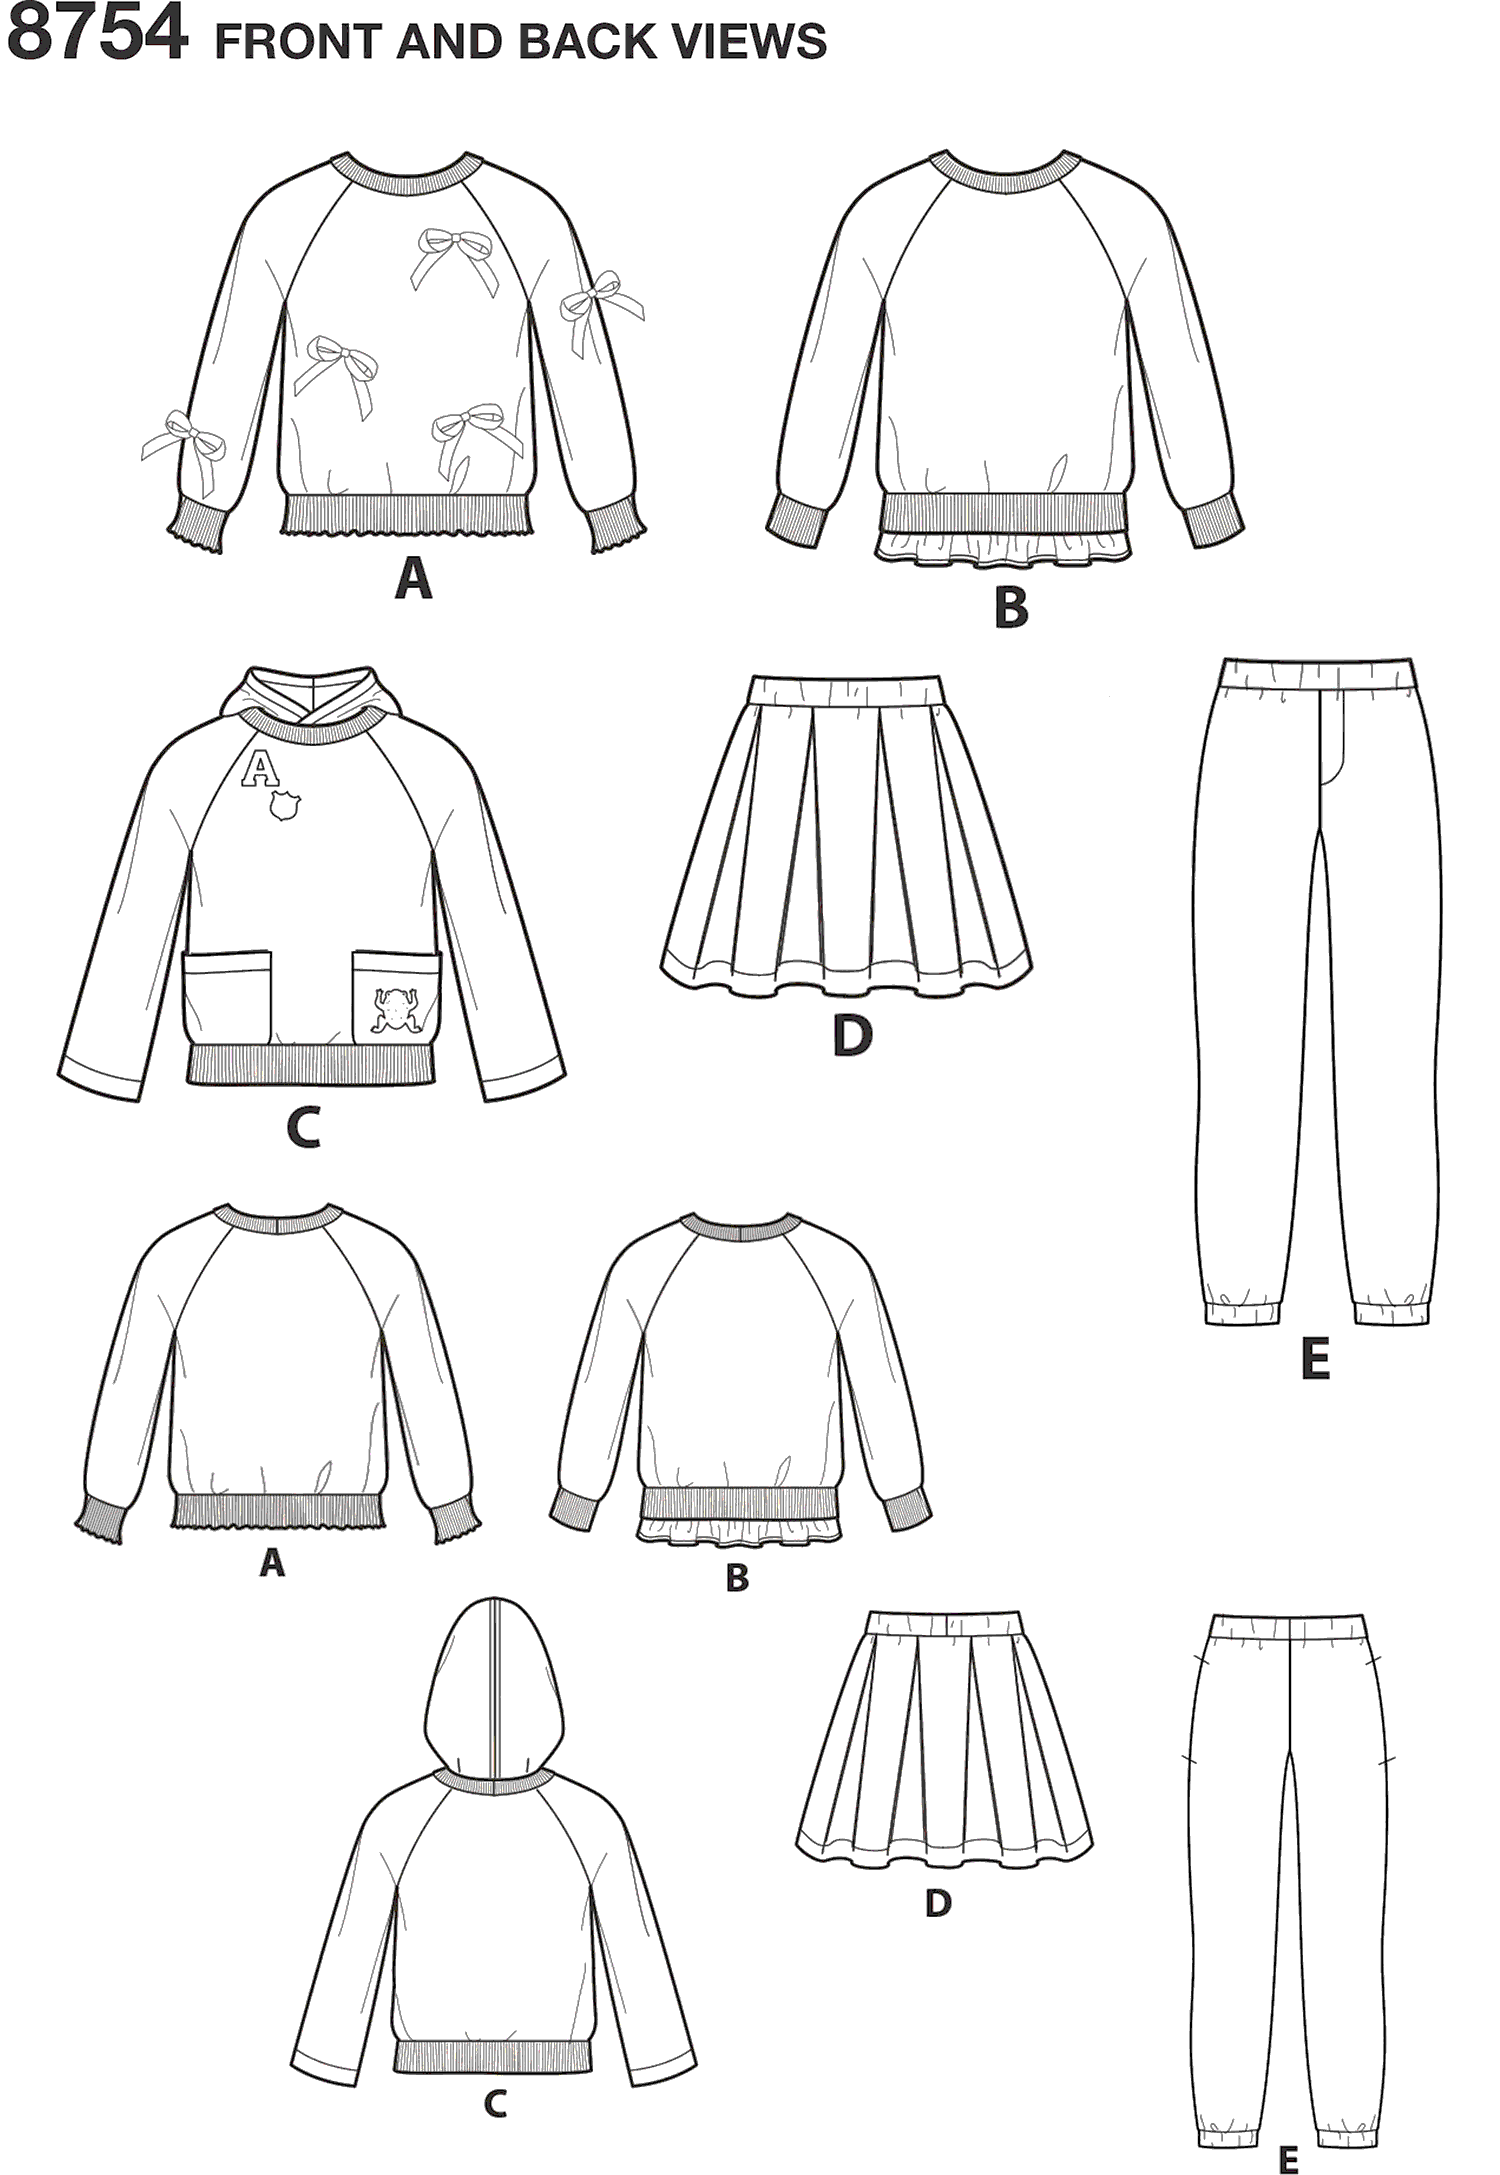 Simplicity Pattern 8754 Childs Trousers Skirt and Sweatshirts Line Art From Patternsandplains.com